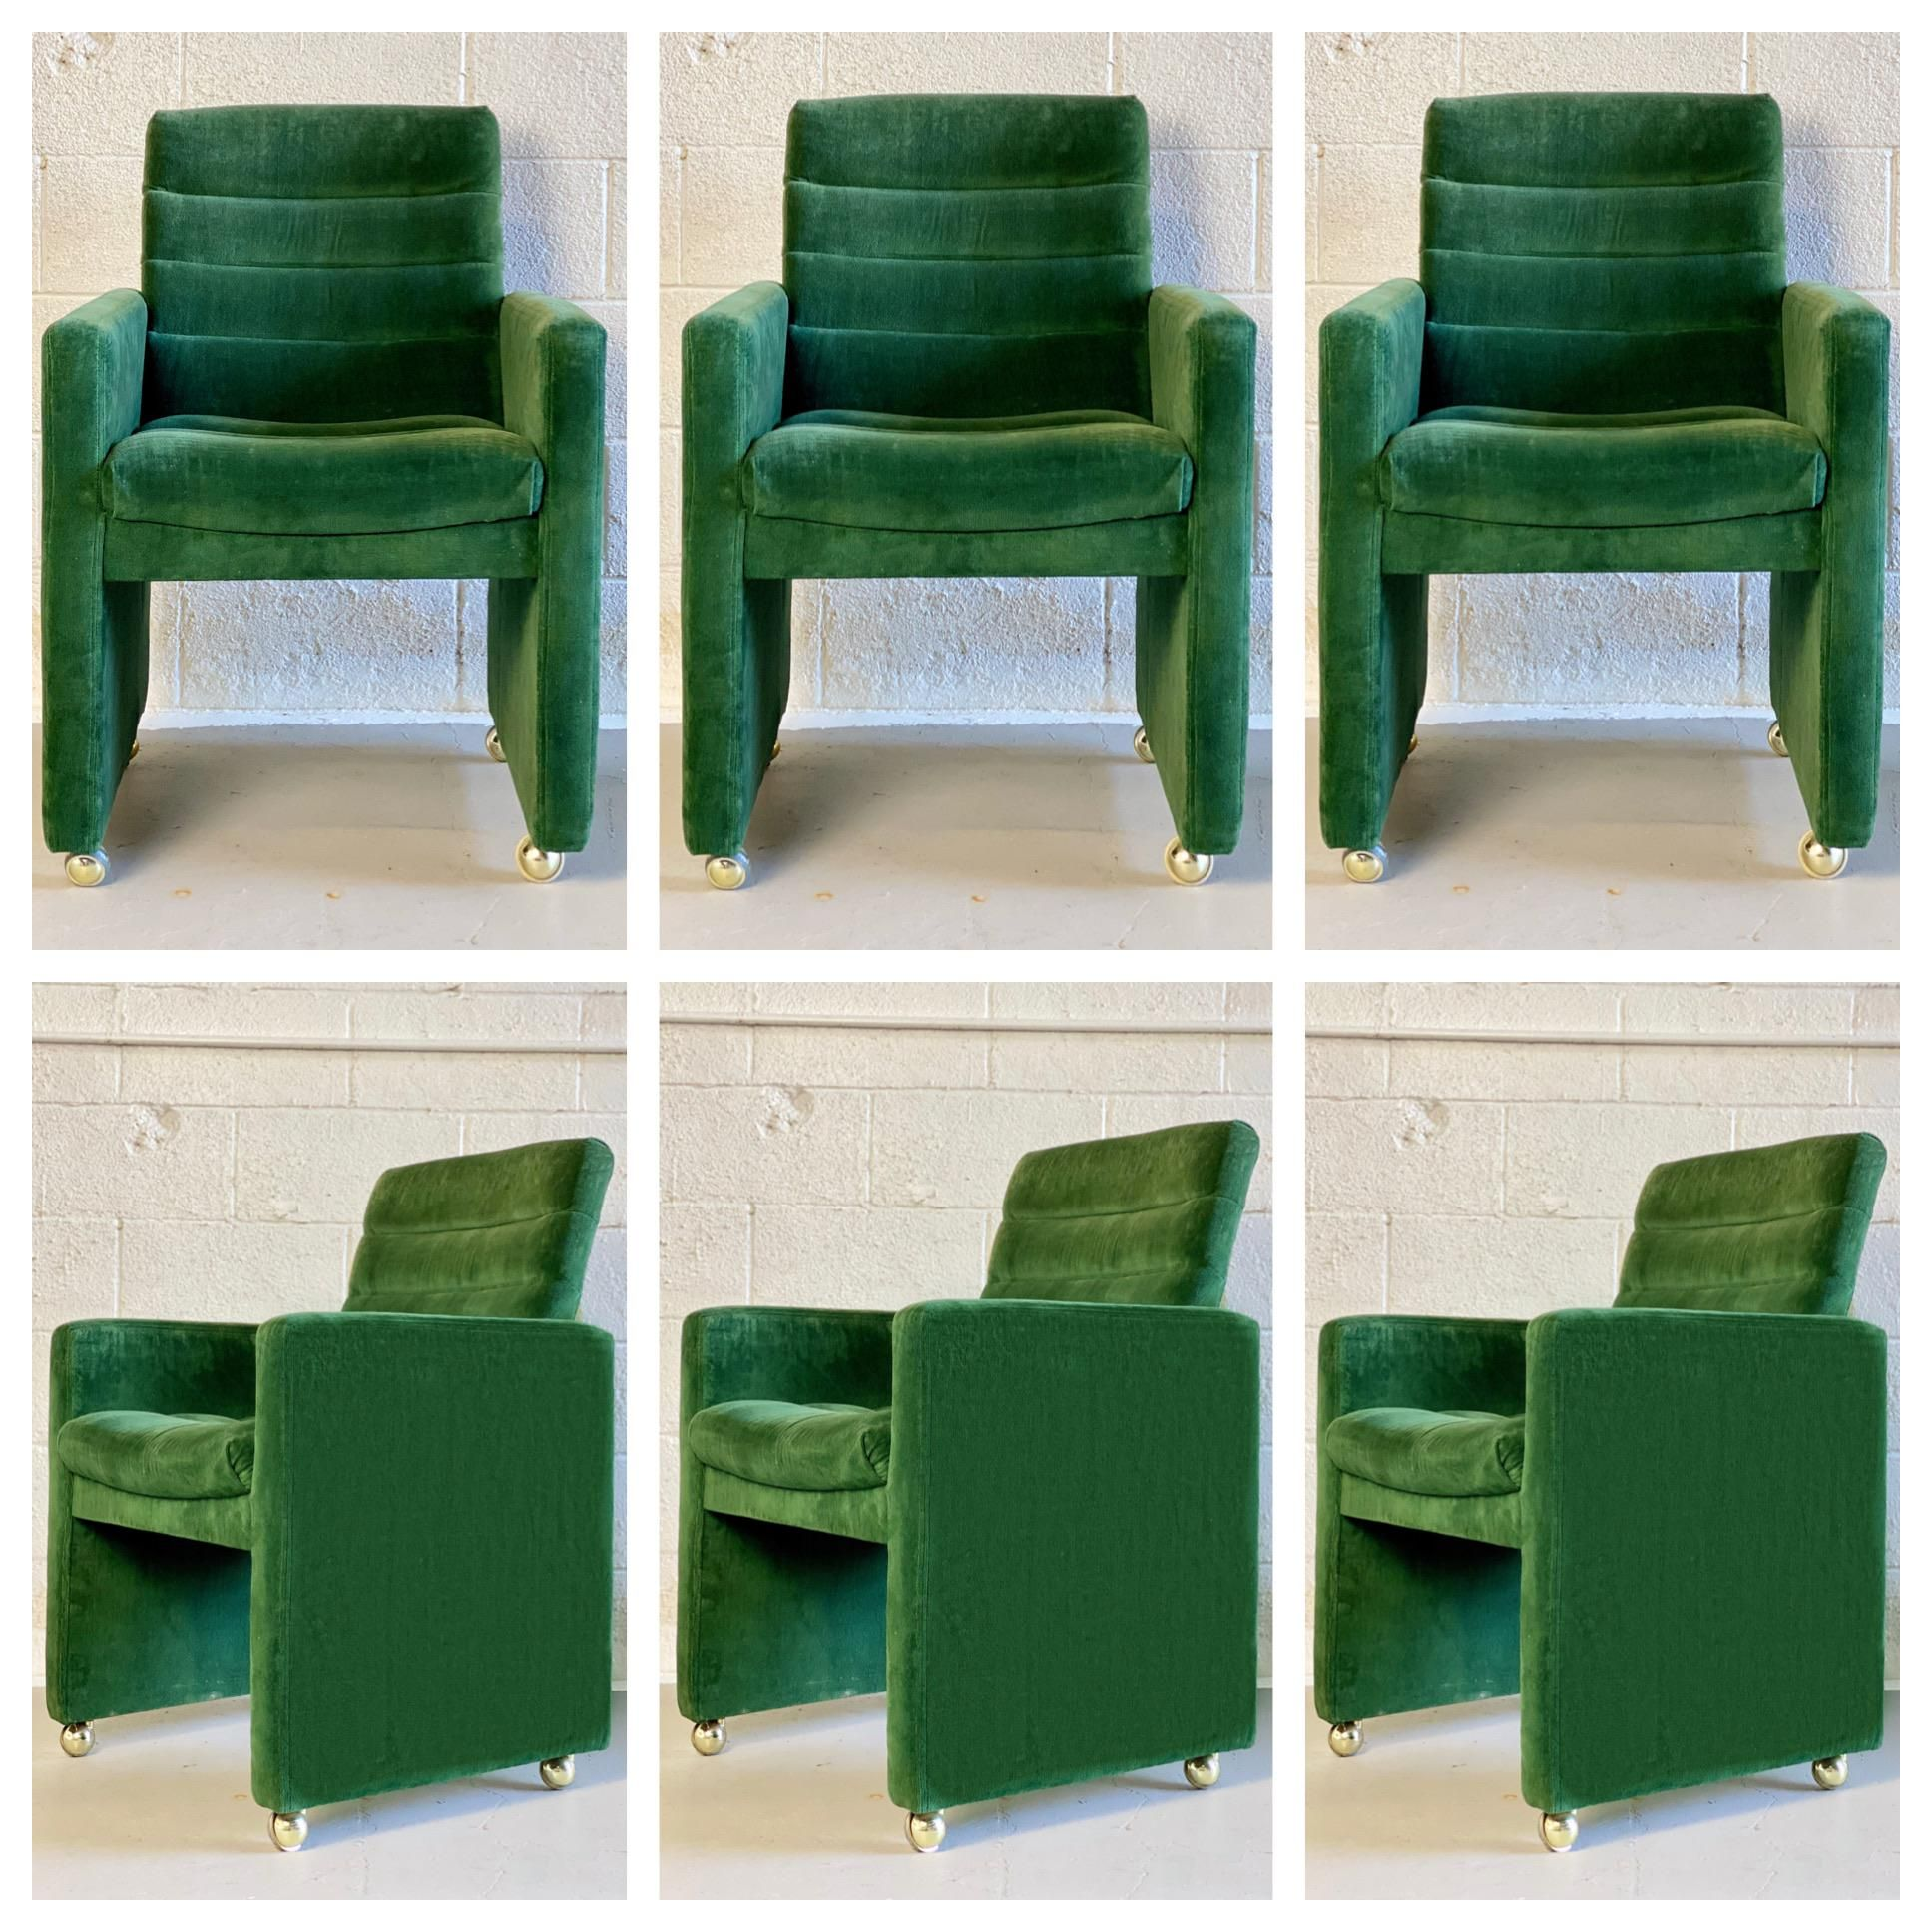 1970s Milo Baughman For Directional Dining Chairs On Casters A Set Of 6 Chairish Dining Chairs Chair Home Furnishings